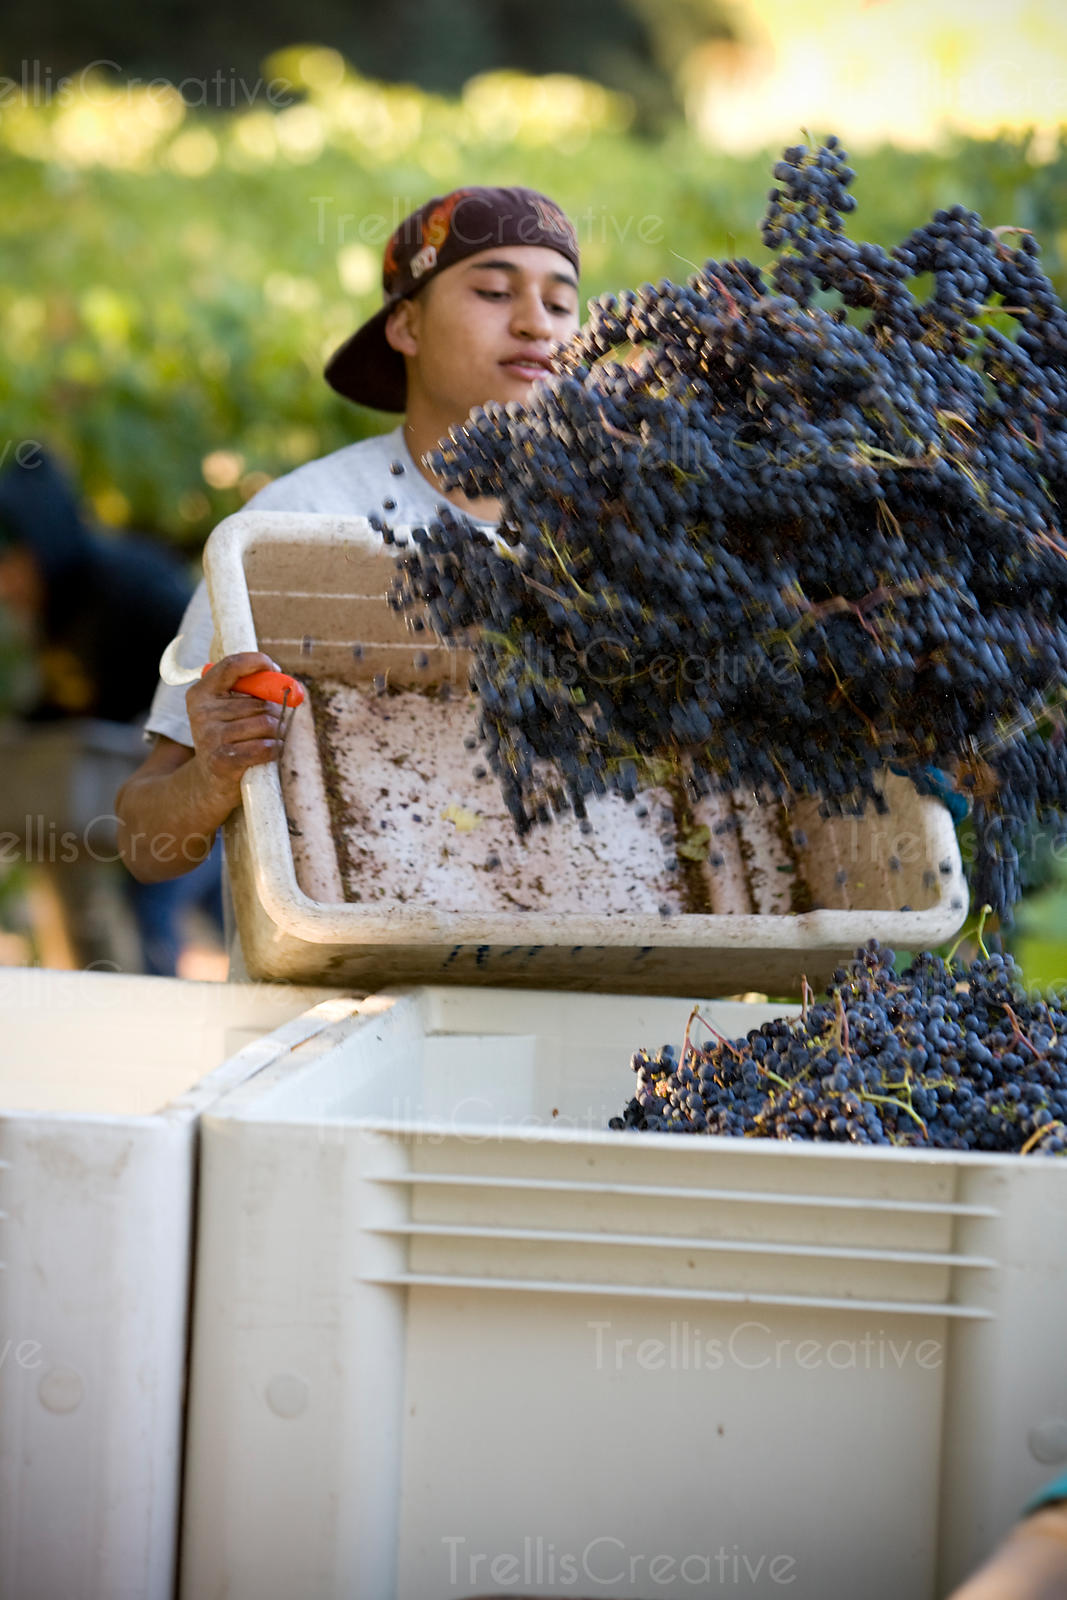 Vineyard worker tosses harvested grapes into the tractor